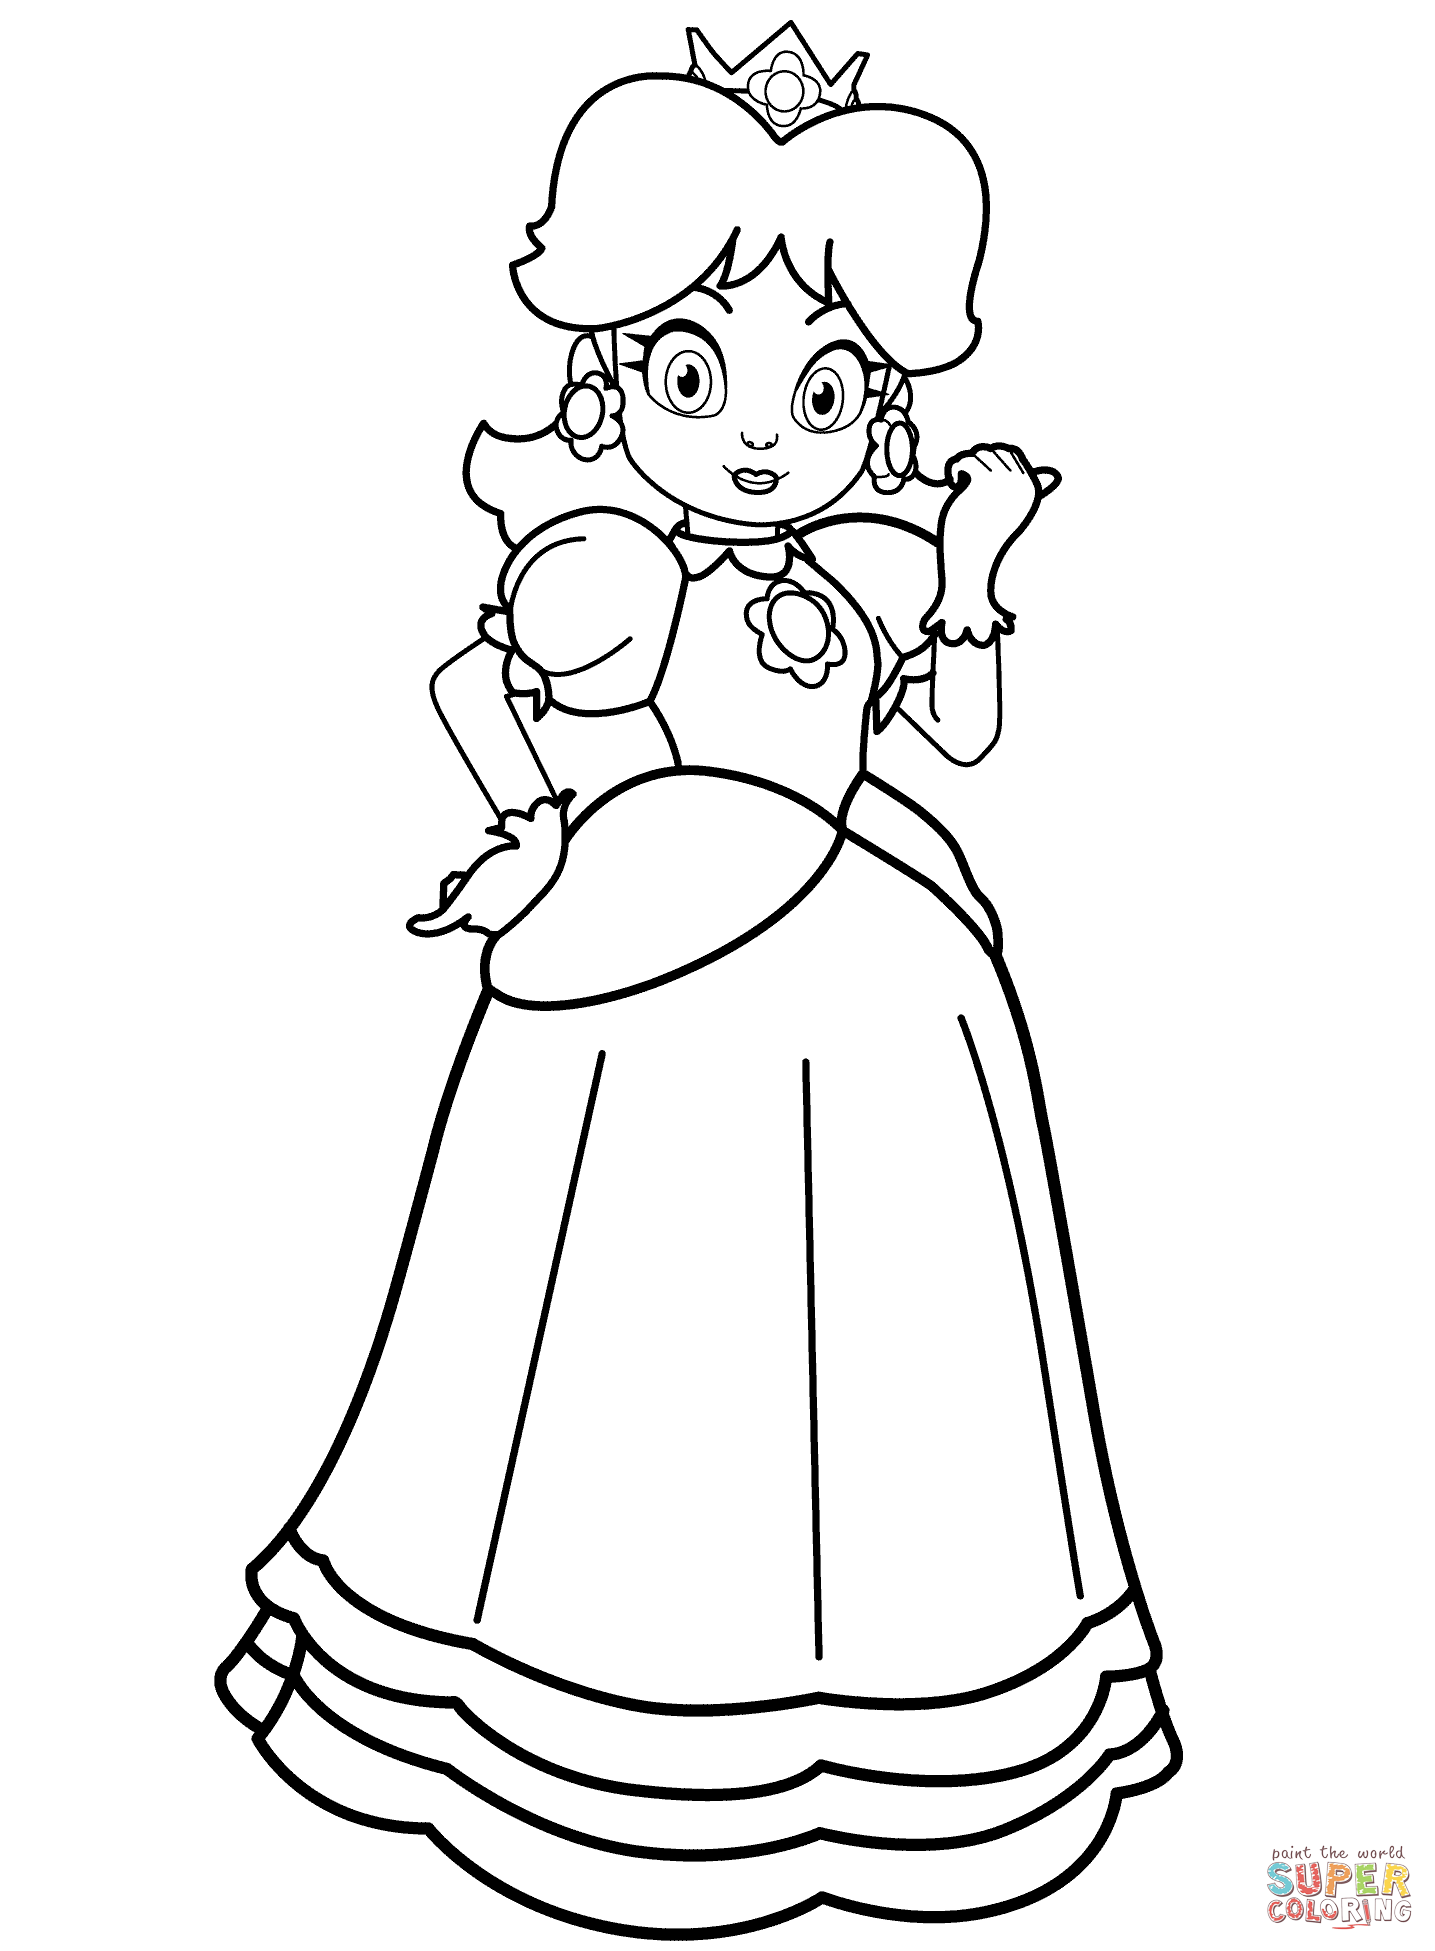 1435x1951 Princess Daisy Coloring Page Free Printable Coloring Pages